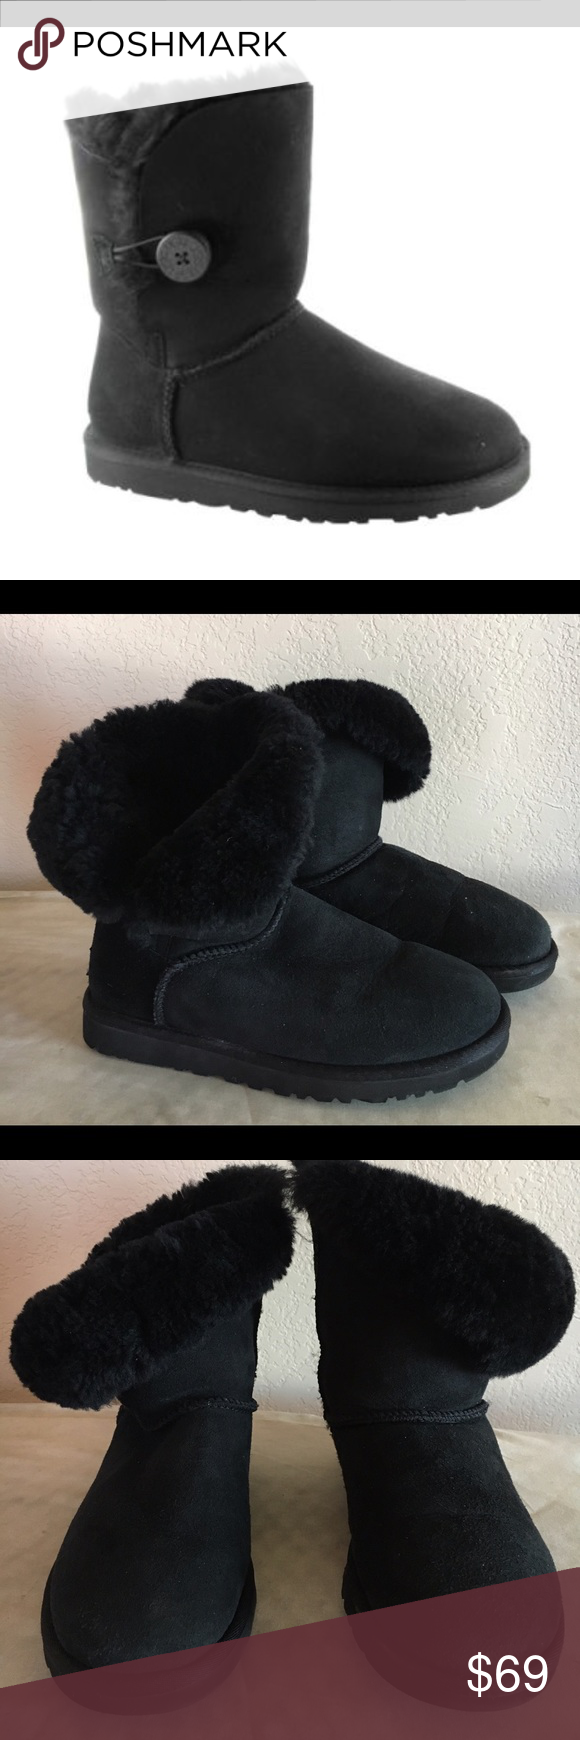 Ugh boots. Good pre-owned condition Black suede short uggs with button detail. Faux fur lining. In good pre-owned condition. Minimal signs of wear. No defects or damage. UGG Shoes Ankle Boots & Booties